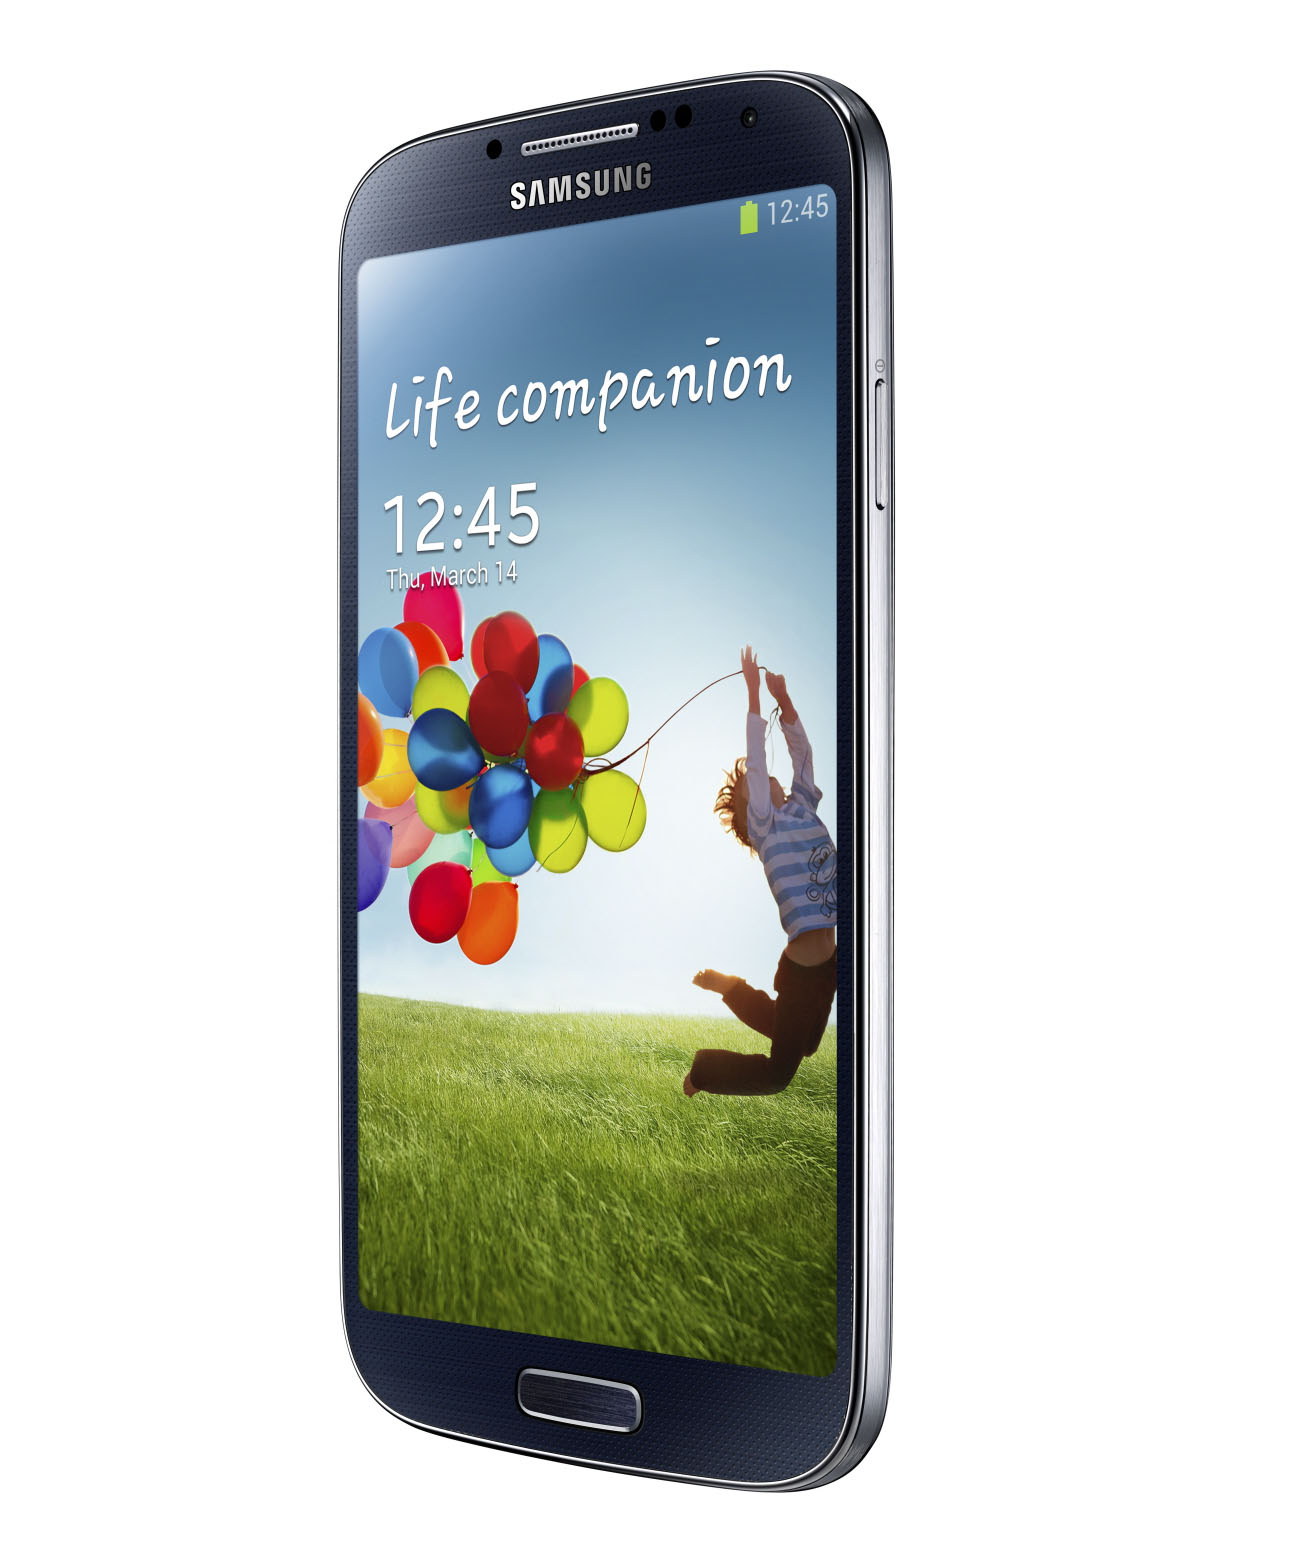 Samsung shifts 10 million Galaxy S4s in 1st month on sale